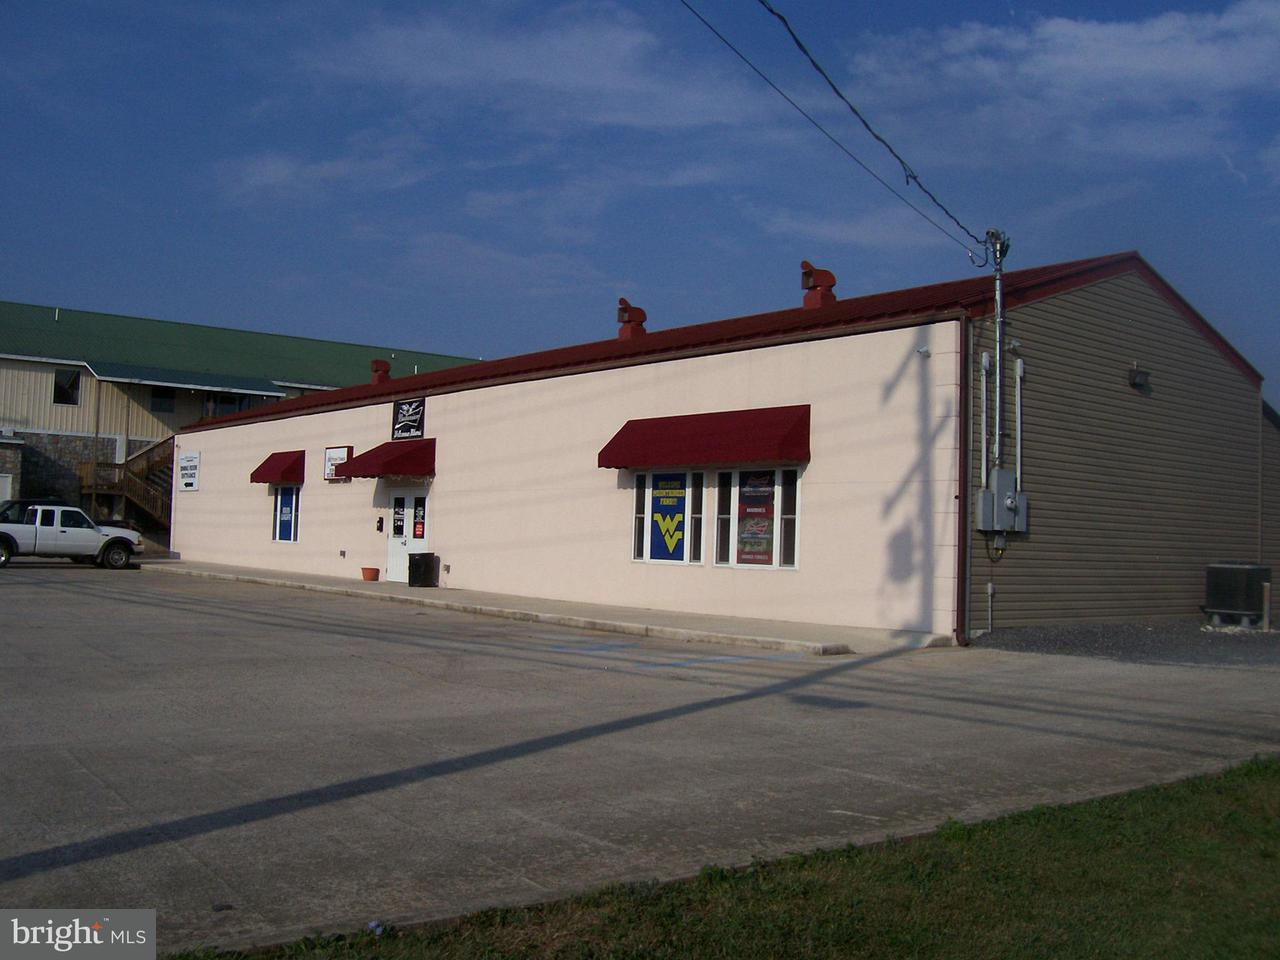 Comercial para Venda às 716 NORTH MAIN Street 716 NORTH MAIN Street Moorefield, West Virginia 26836 Estados Unidos